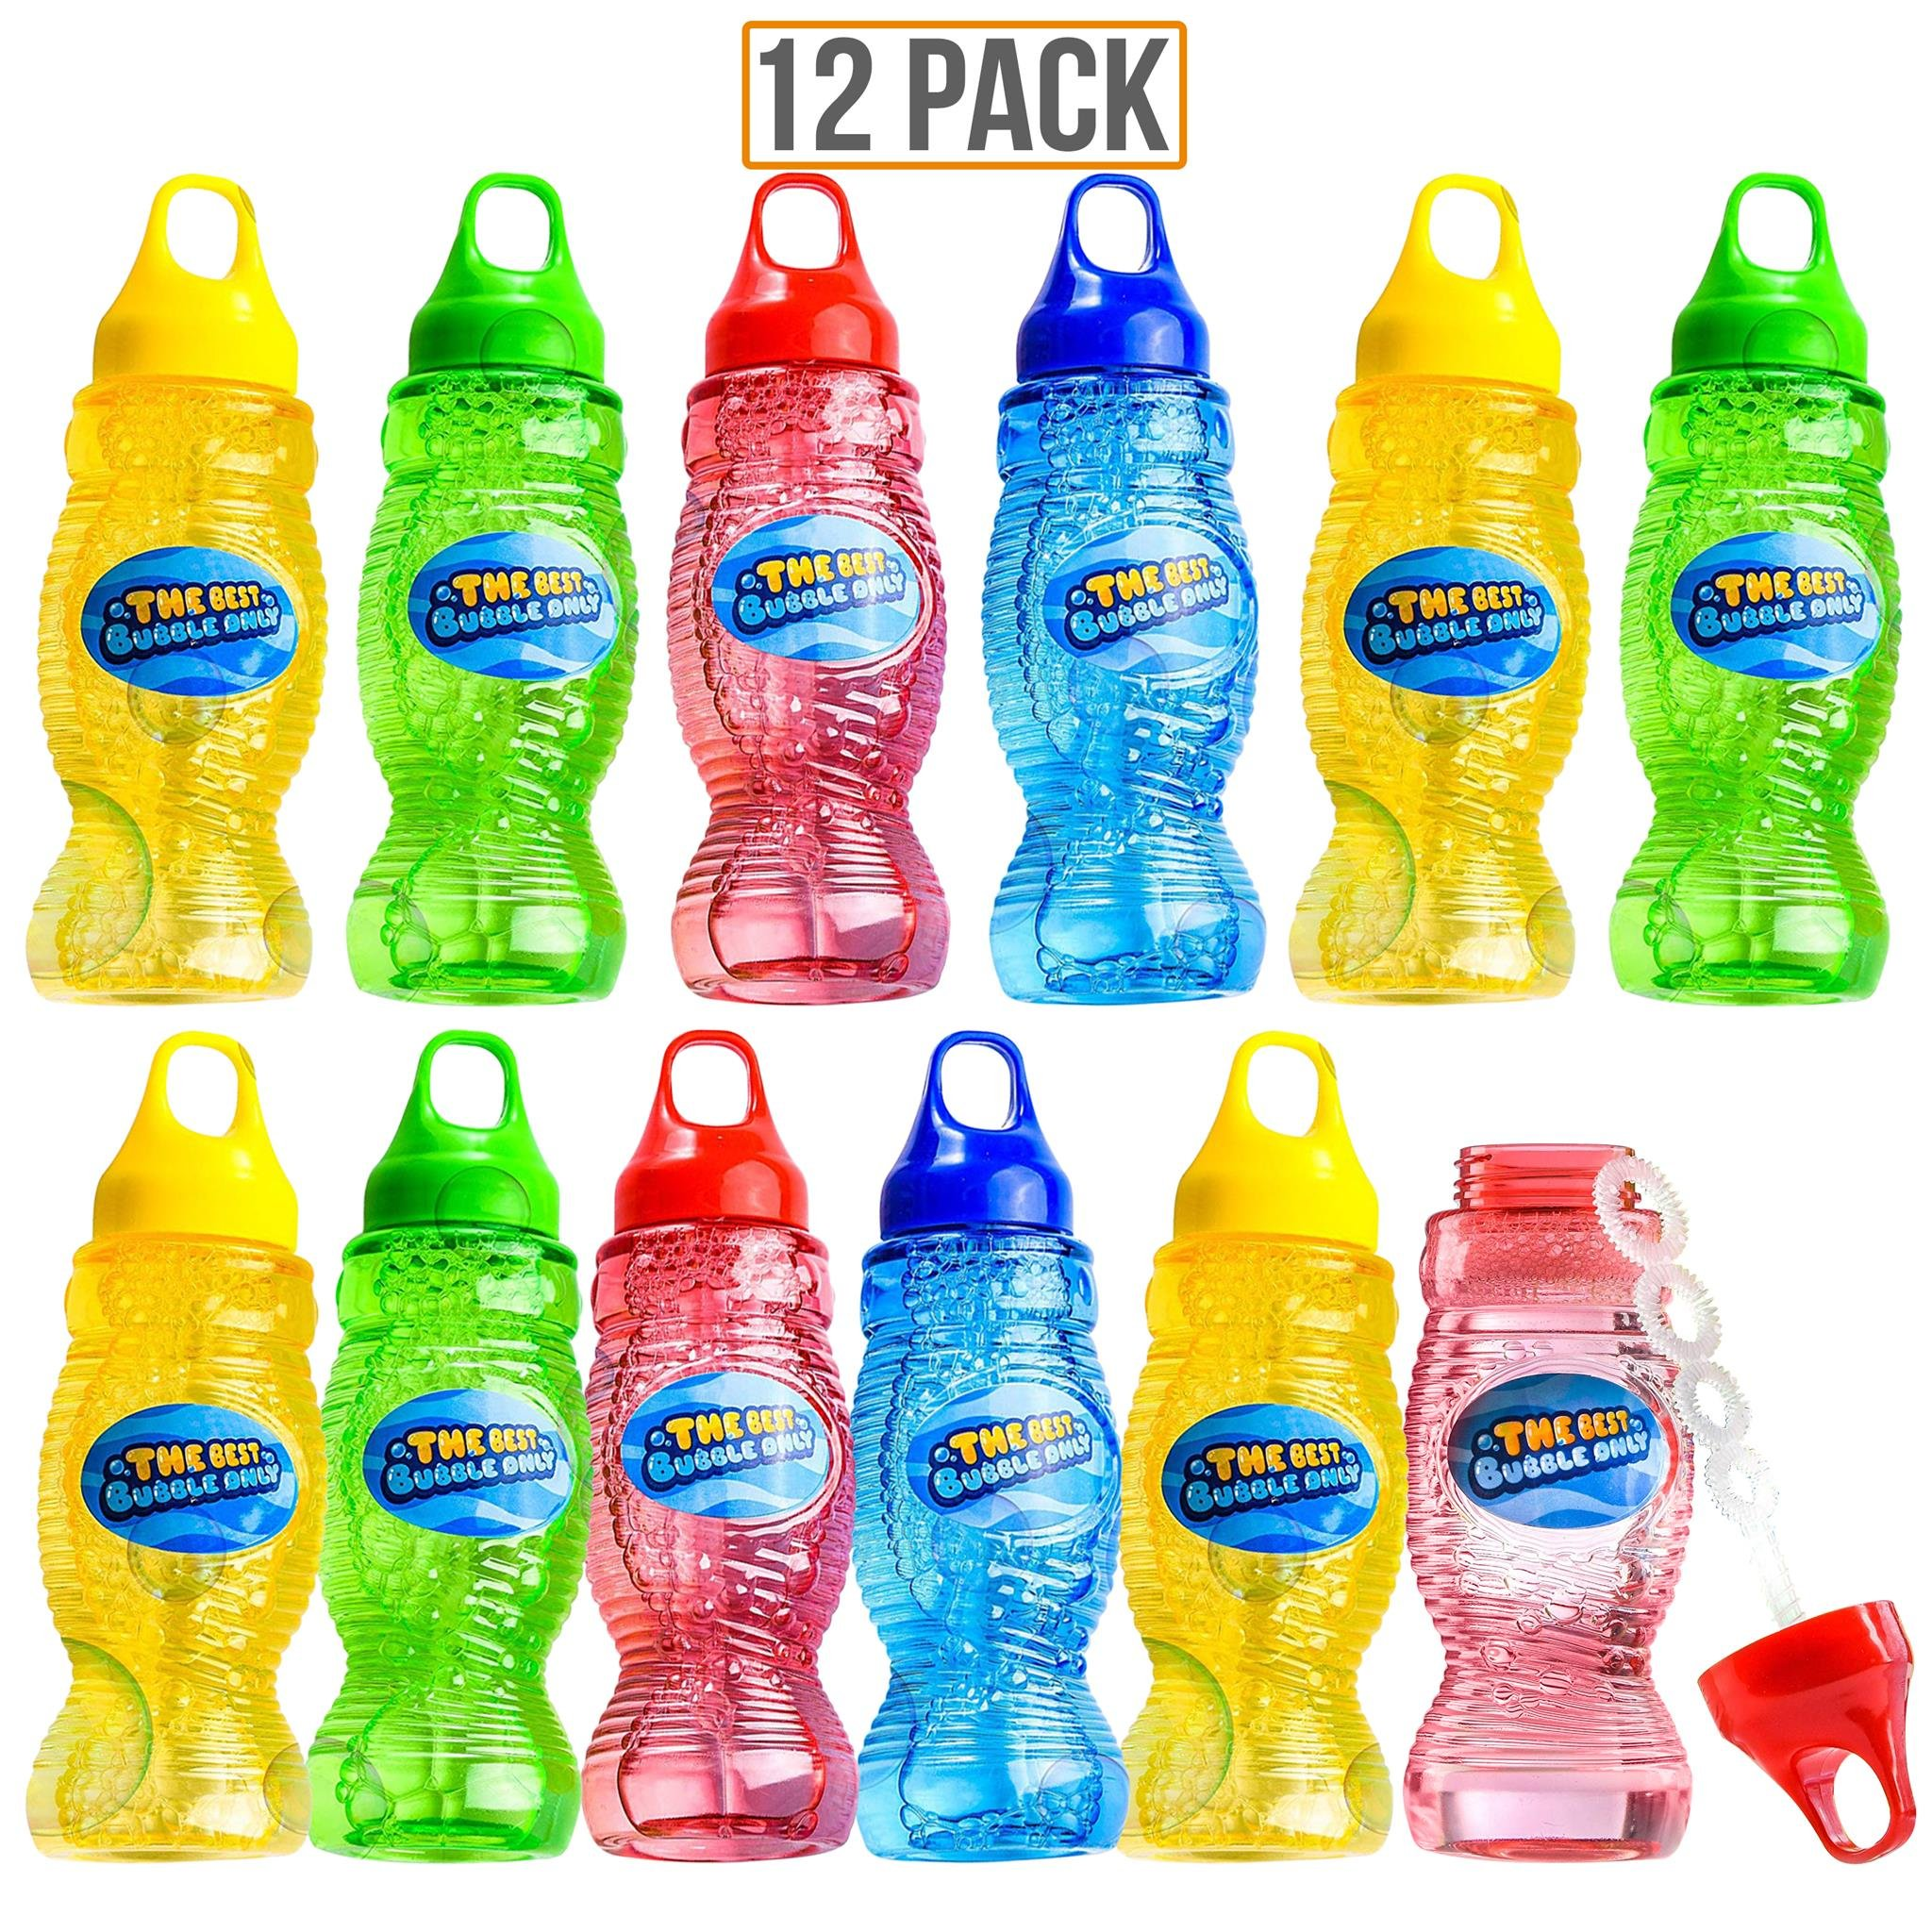 Prextex 12-Pack 8 Oz Bubble Solution with Wand, Bubble Gun Refill, Kids Outdoor Toys for Pool, Birthday, Wedding, Bubble Party Favors